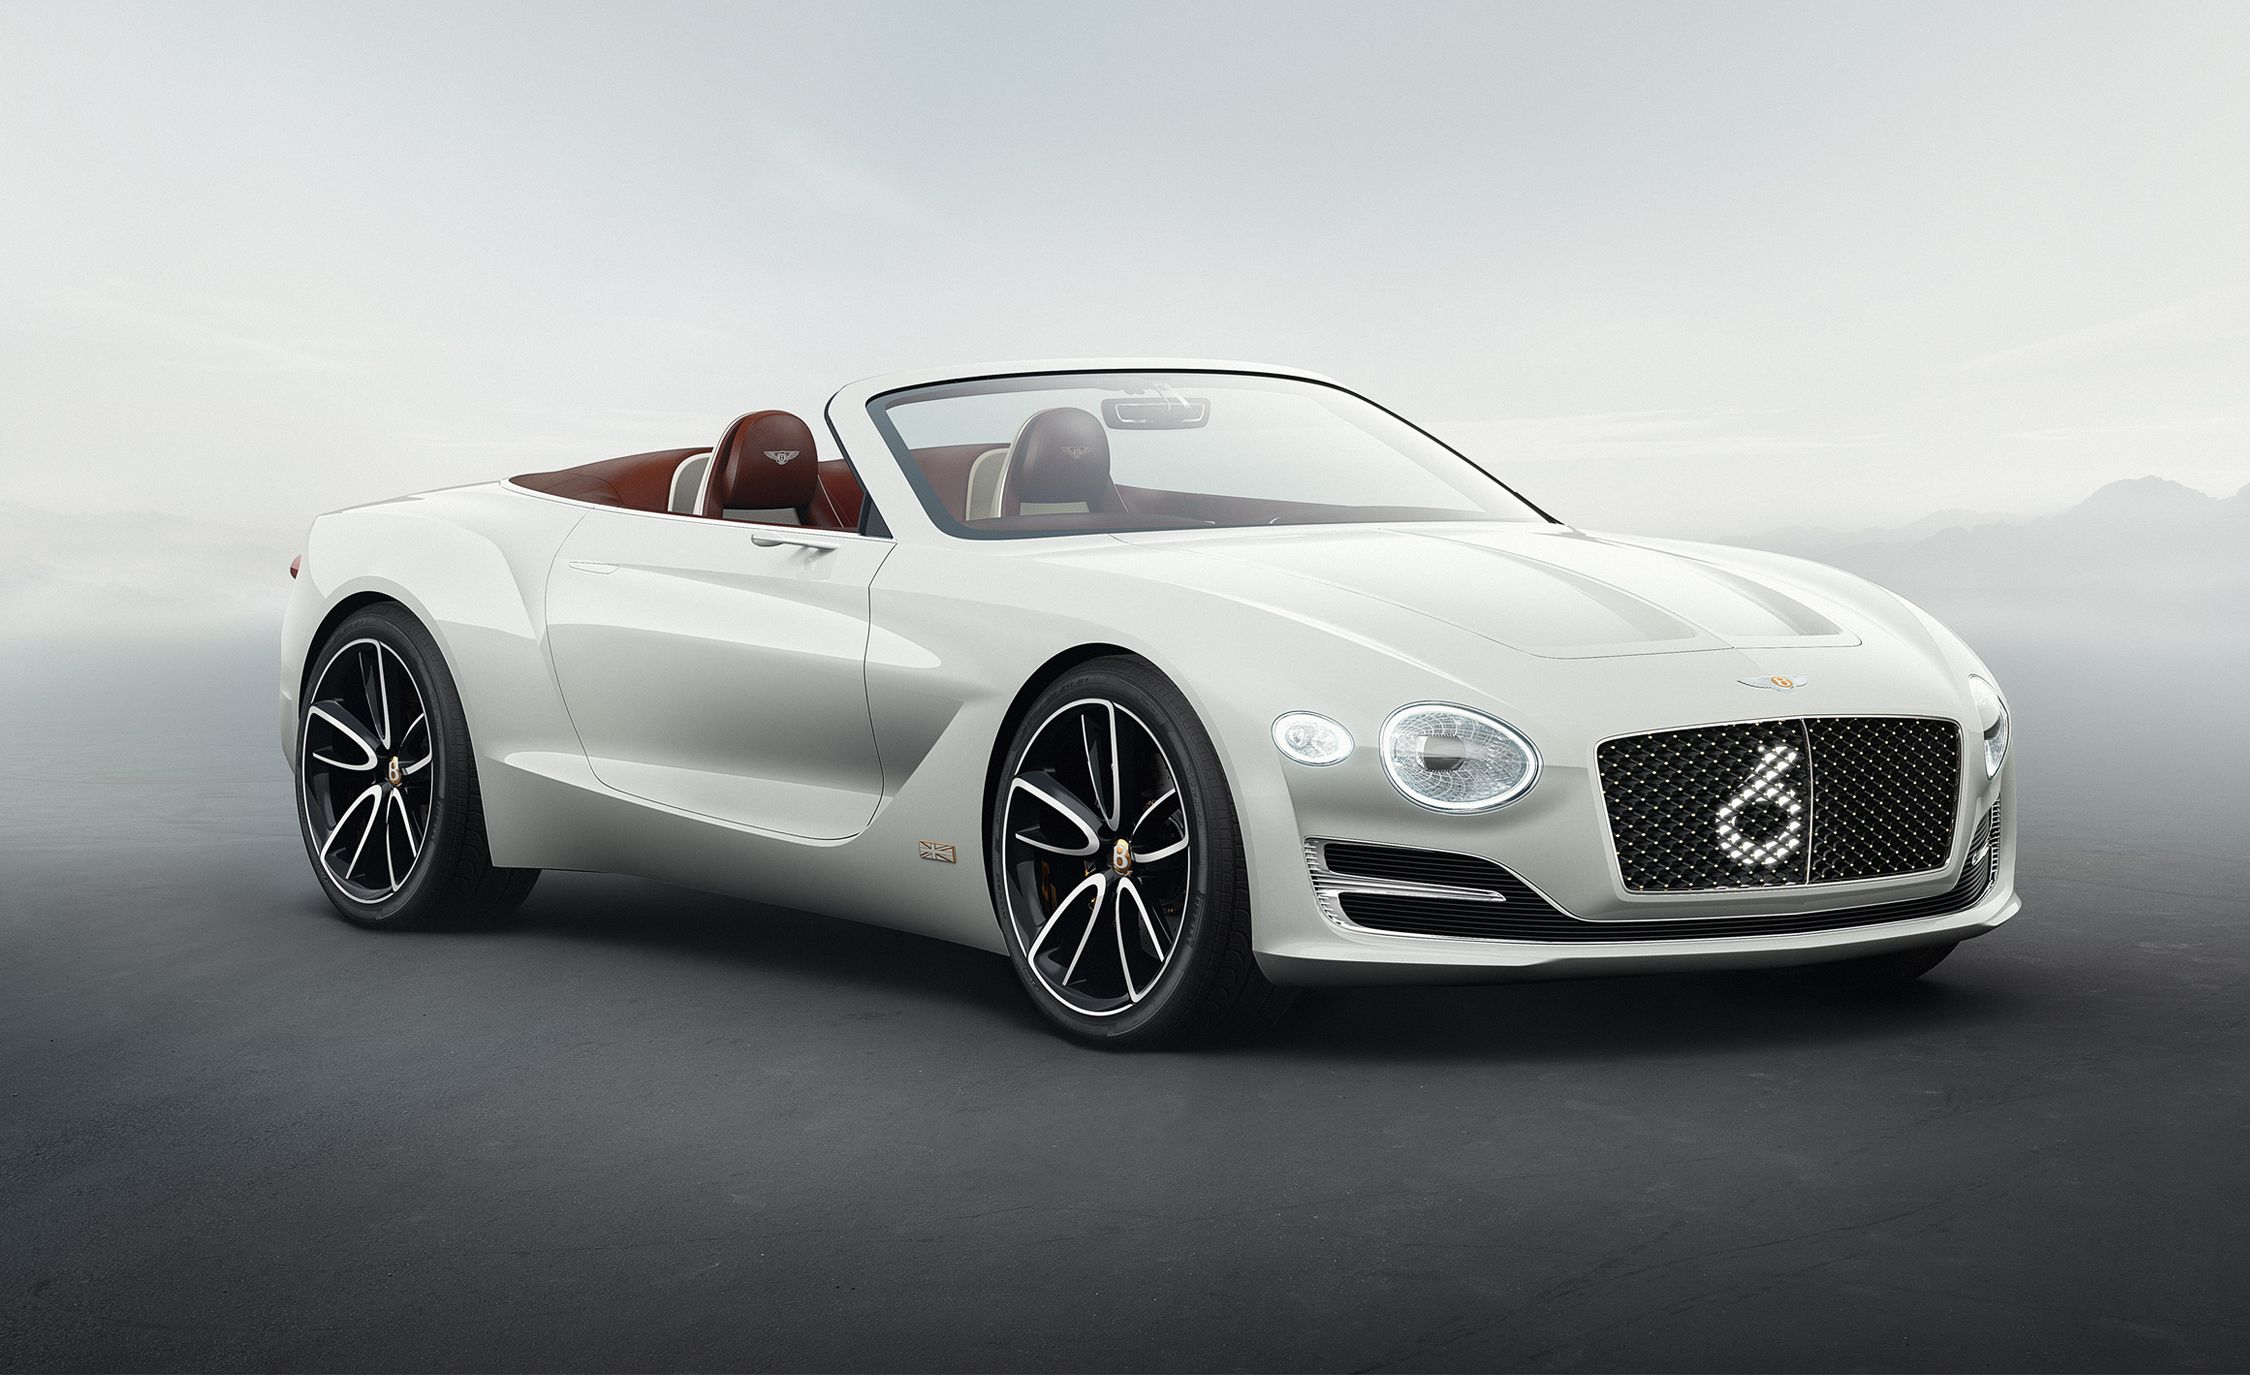 Bentley EXP 12 Speed 6e Concept: The Flying B Goes EV